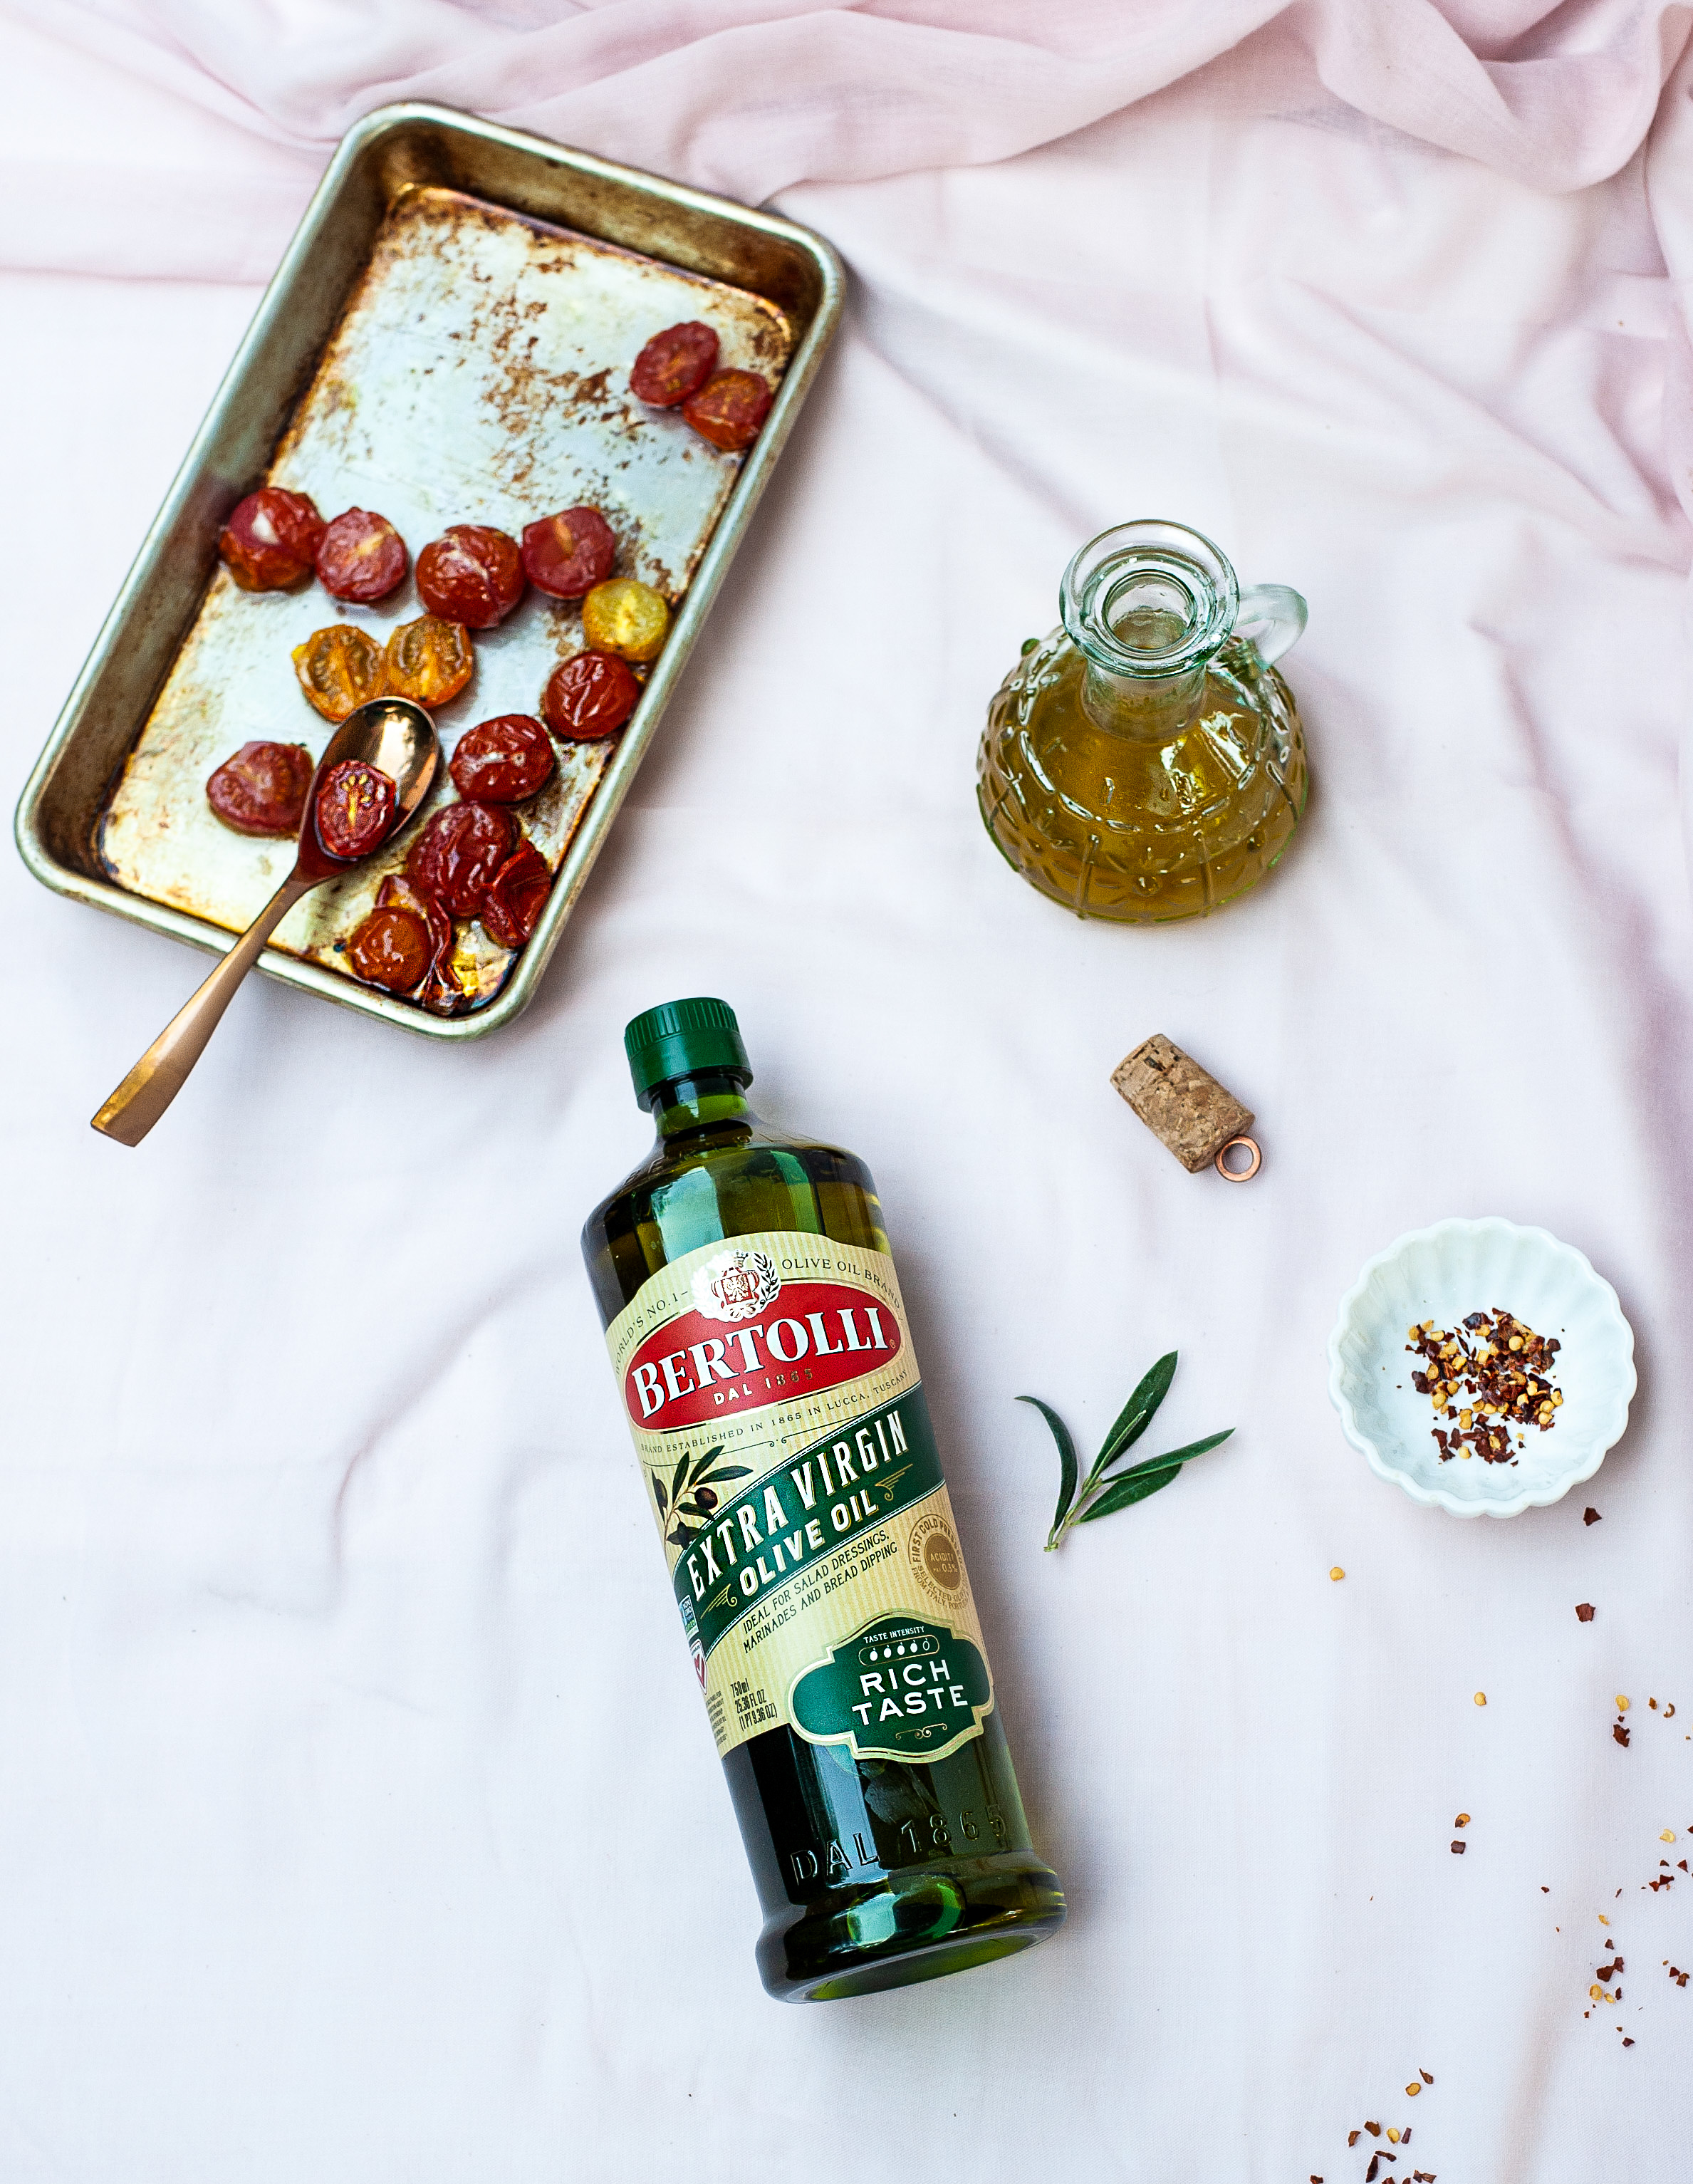 Bertolli-Olive-Oil-Bottle-2.jpg